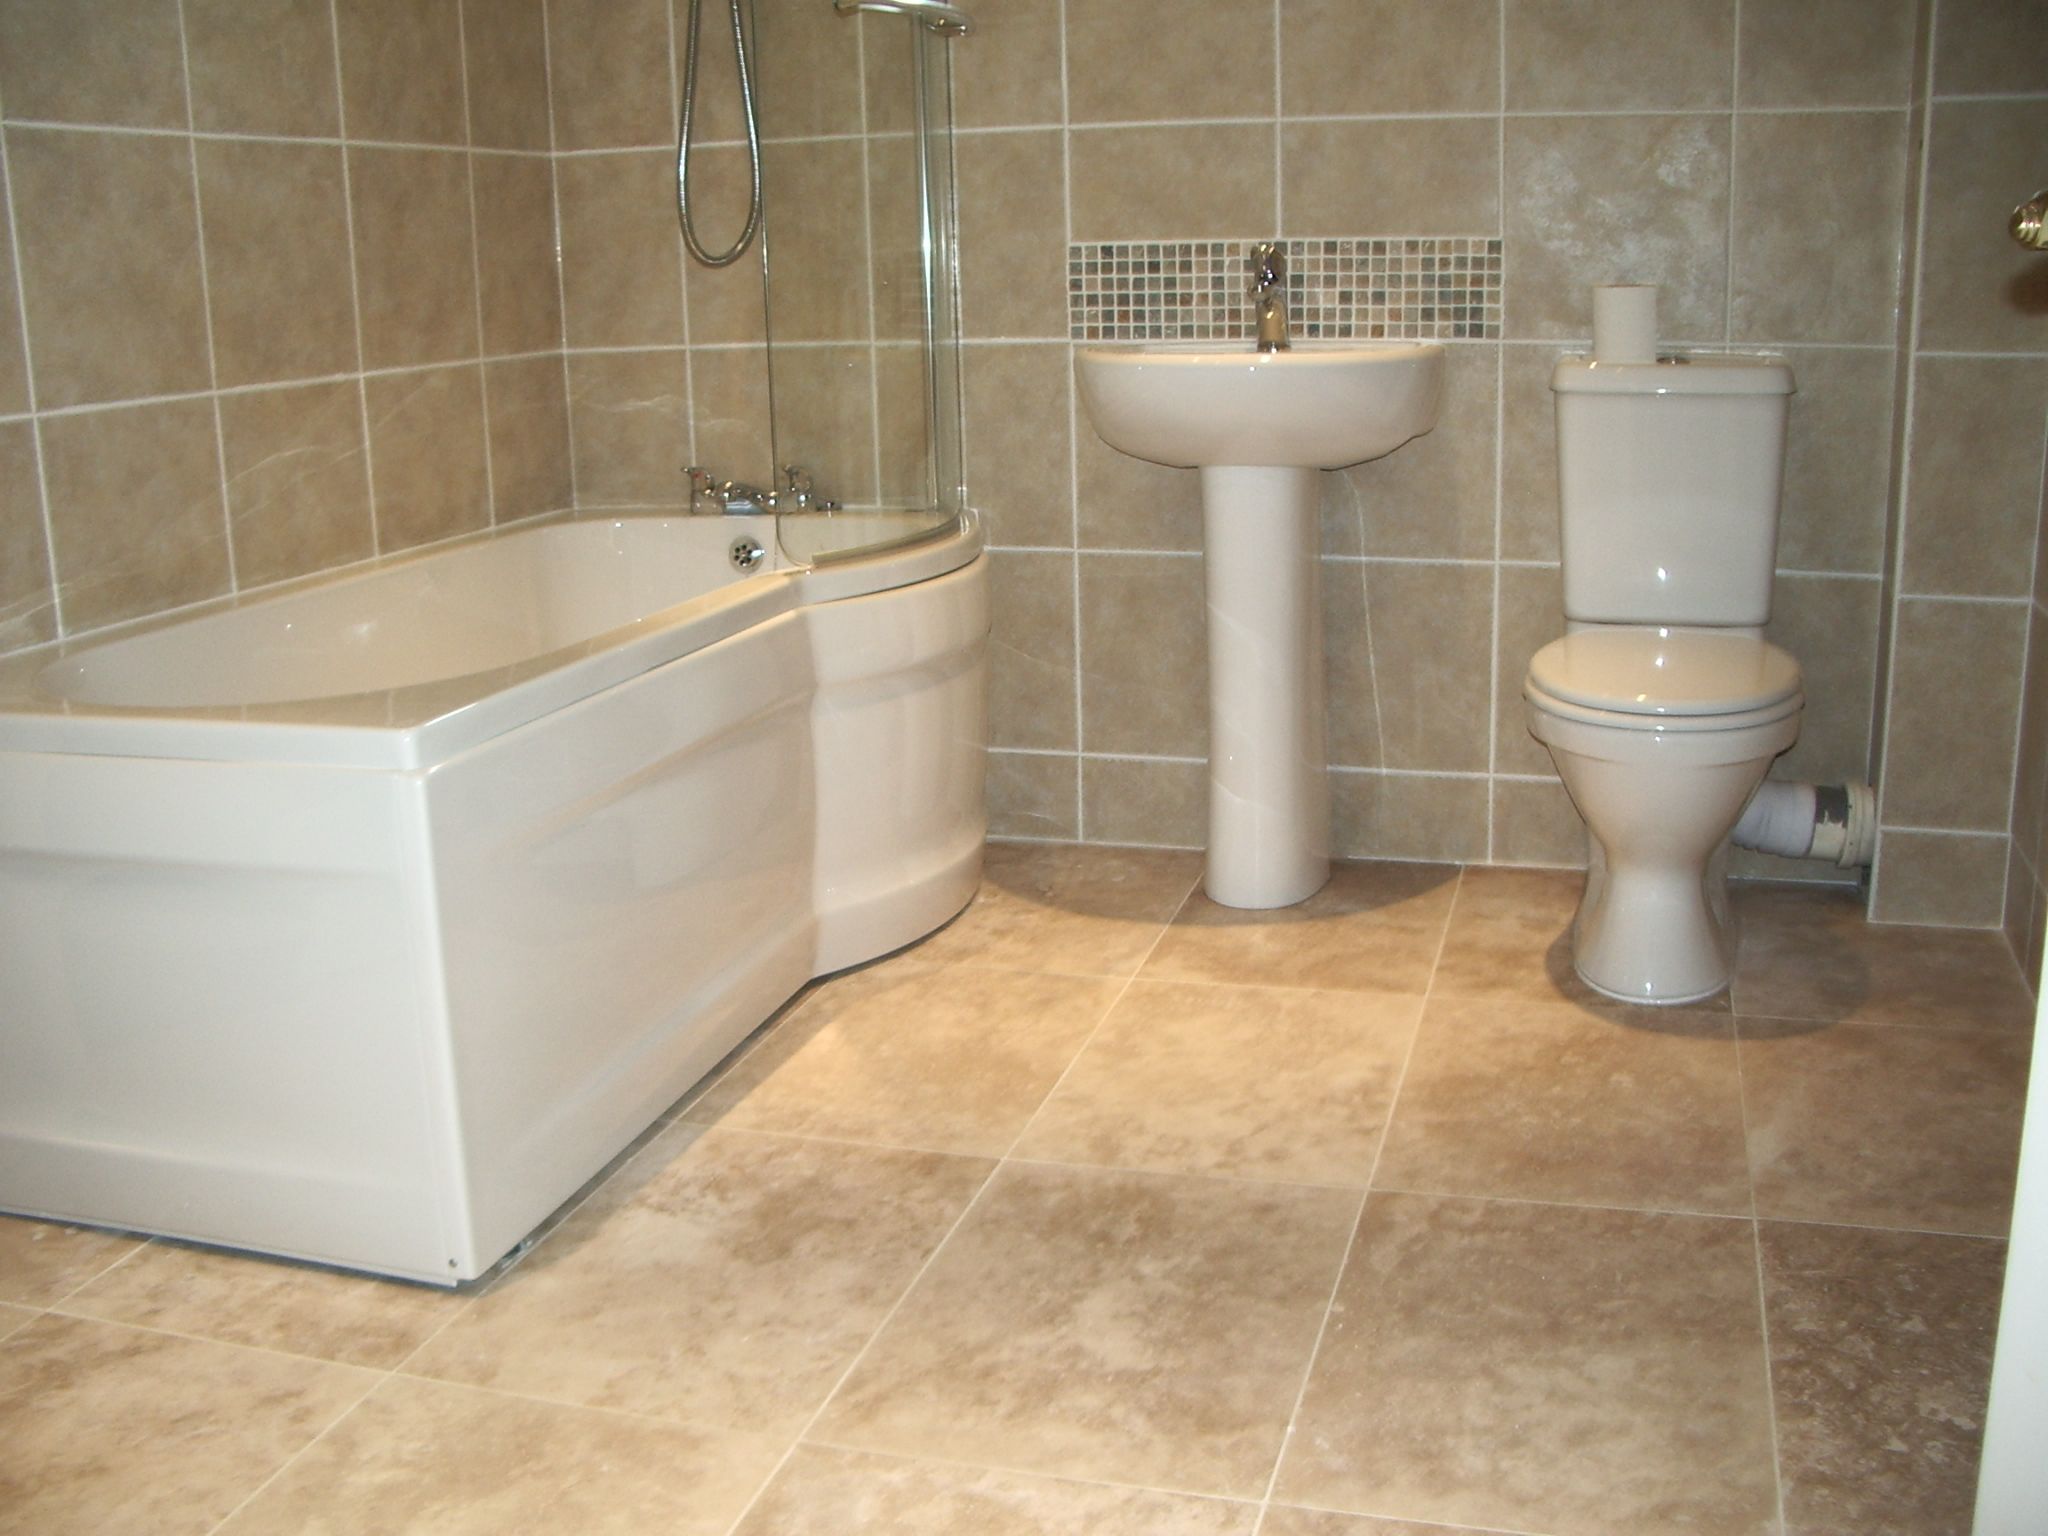 Mike Walton Property Maintenance Bathrooms Wet Rooms